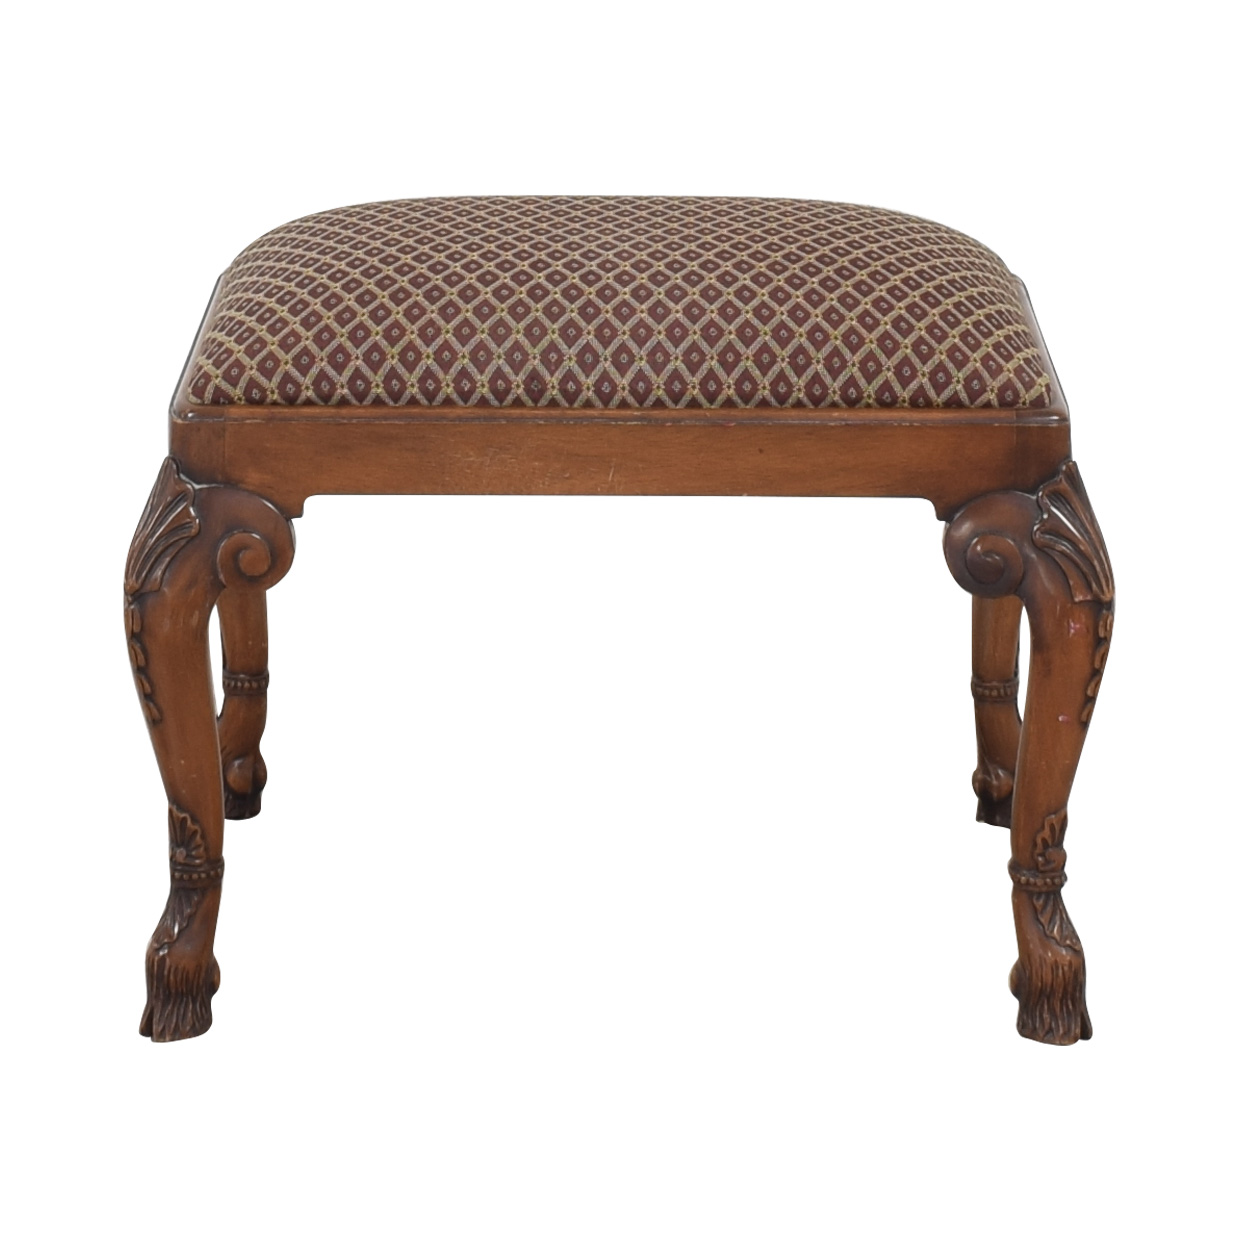 Maitland-Smith Maitland-Smith Bench brown and red